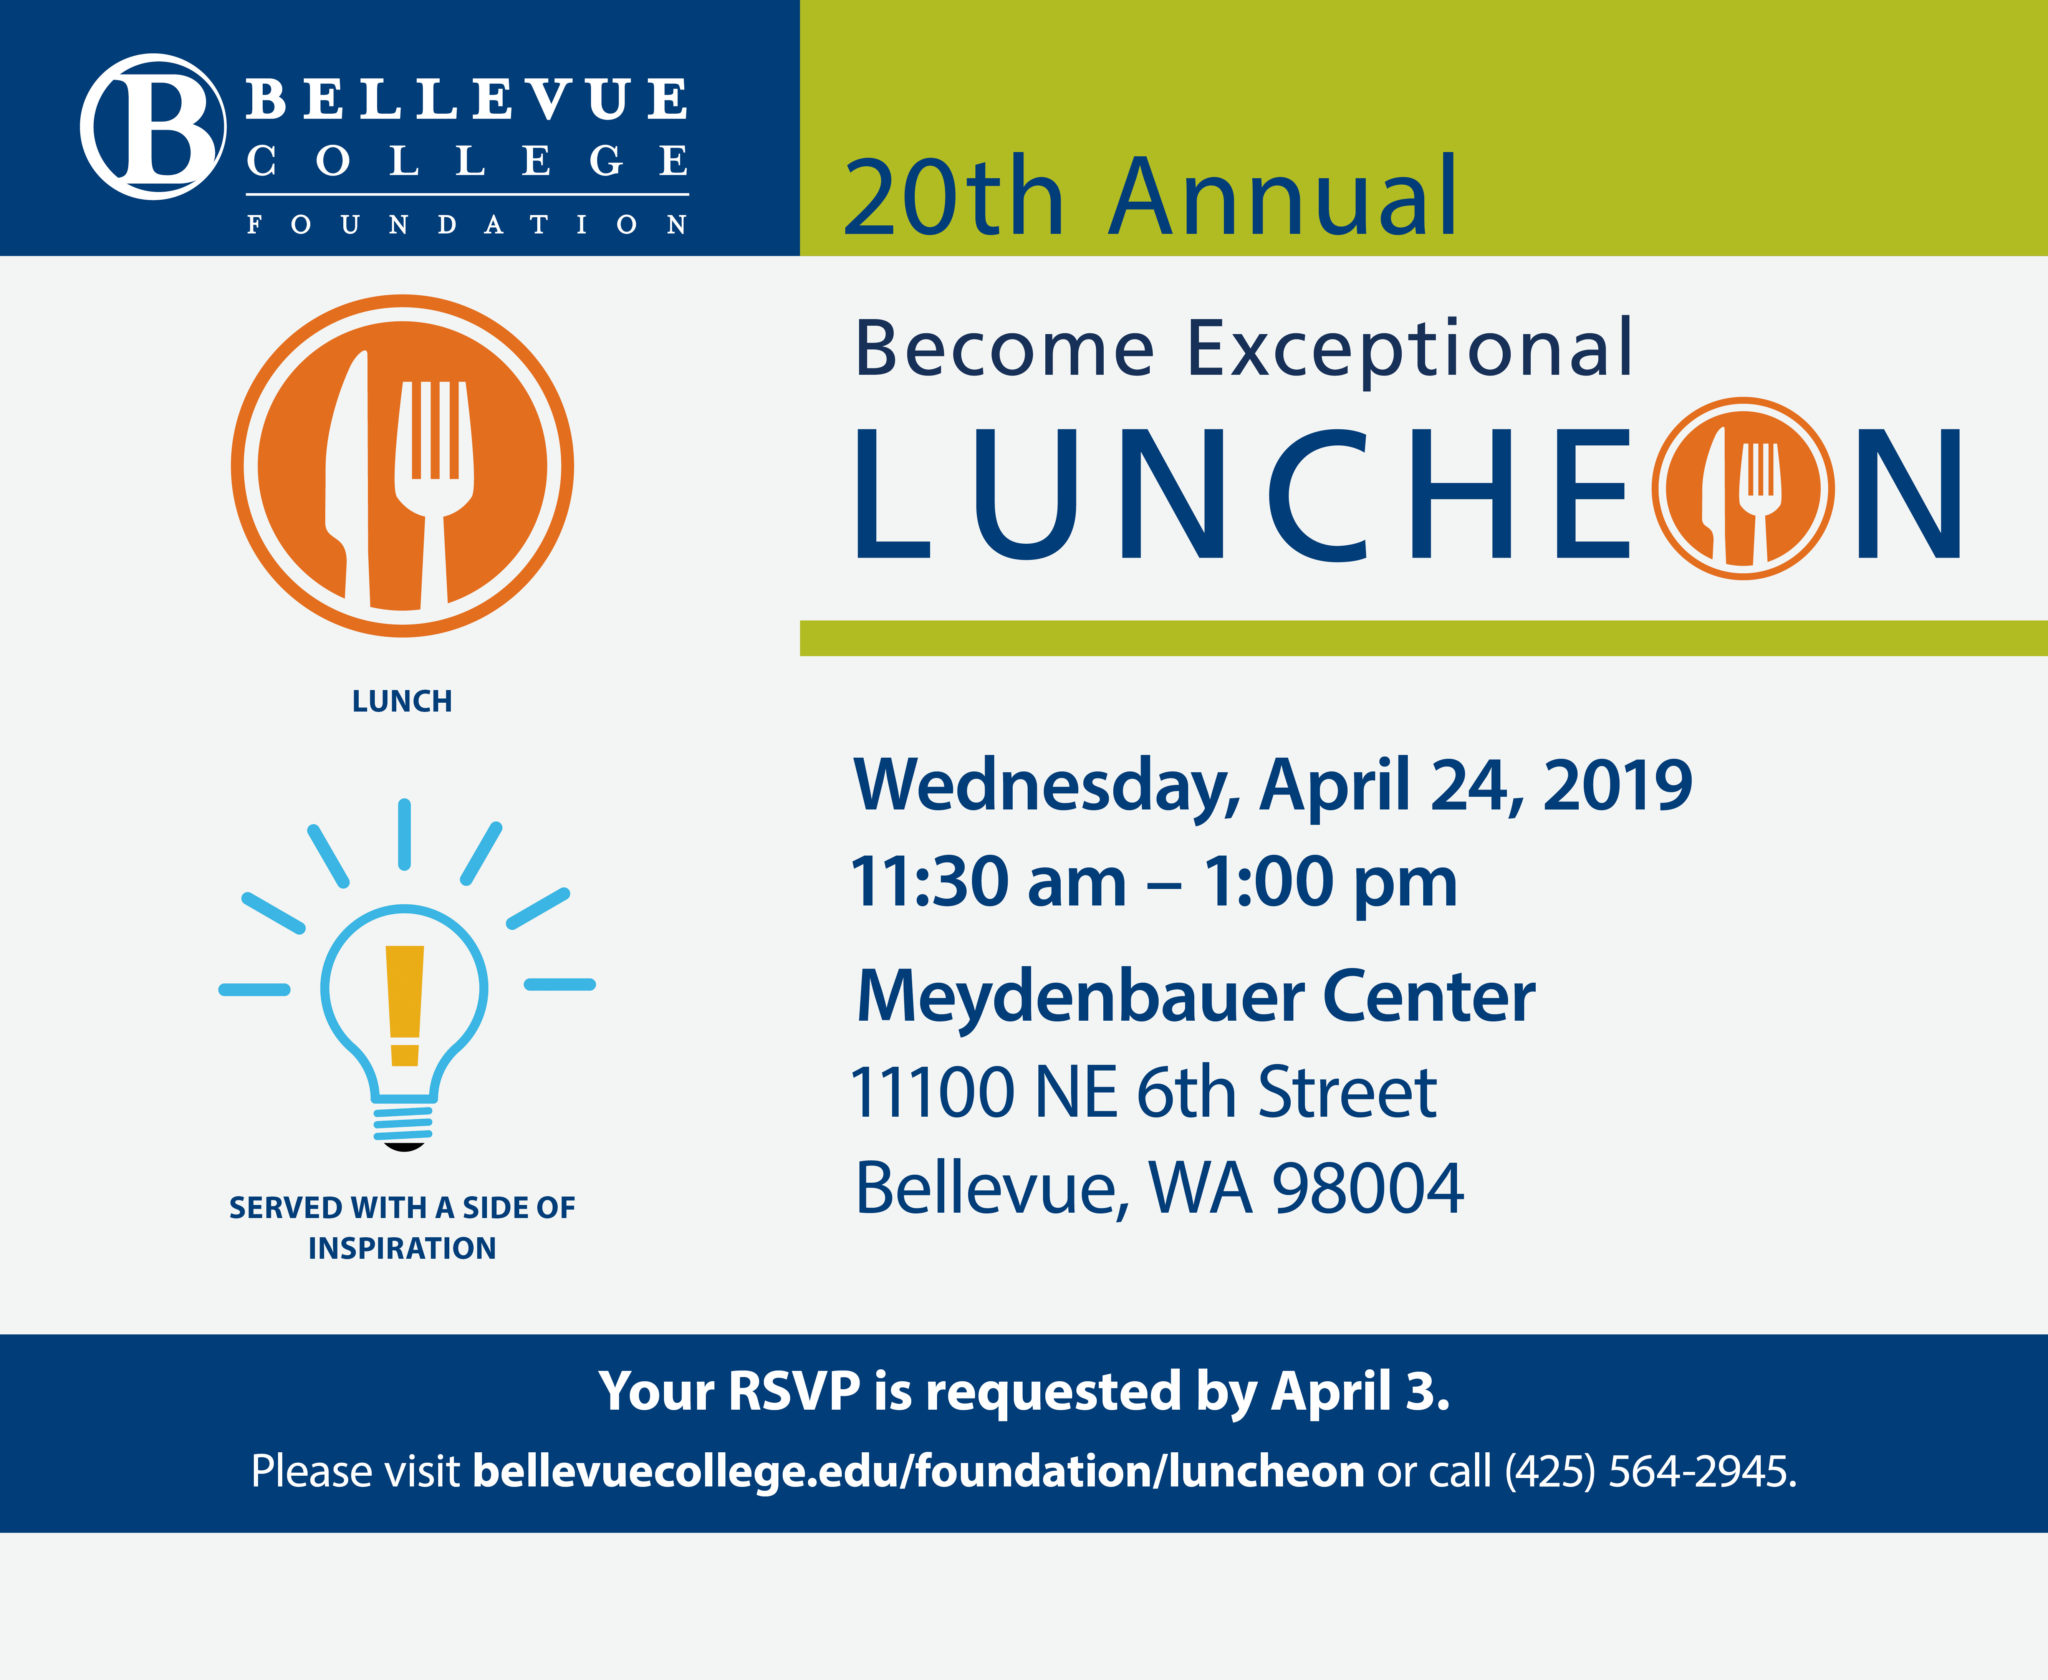 2018-19 BC Foundation Luncheon Invite